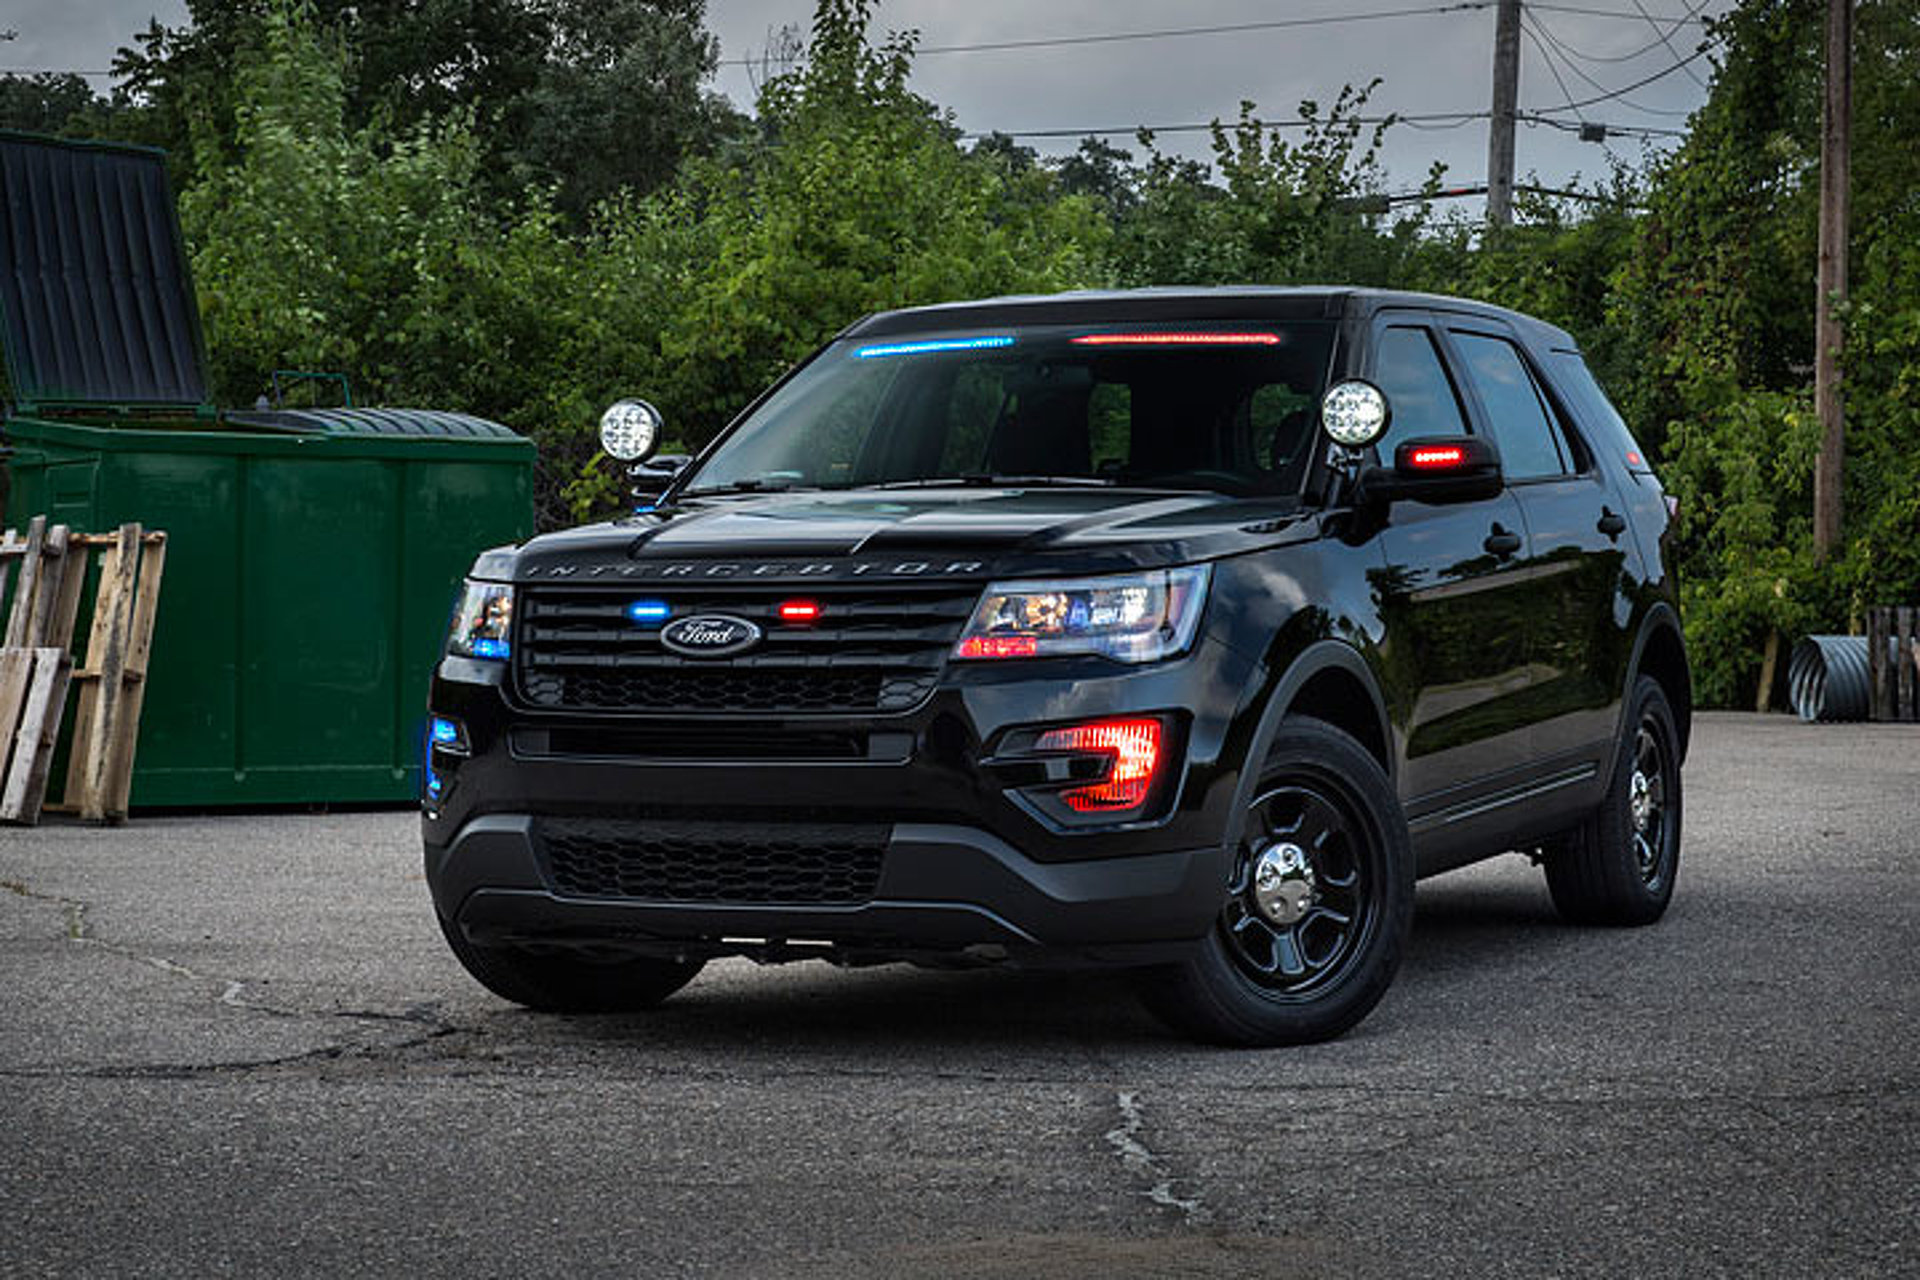 Blacked Out Ford Explorer >> 2017 Ford Explorer Blacked Out   Best new cars for 2018